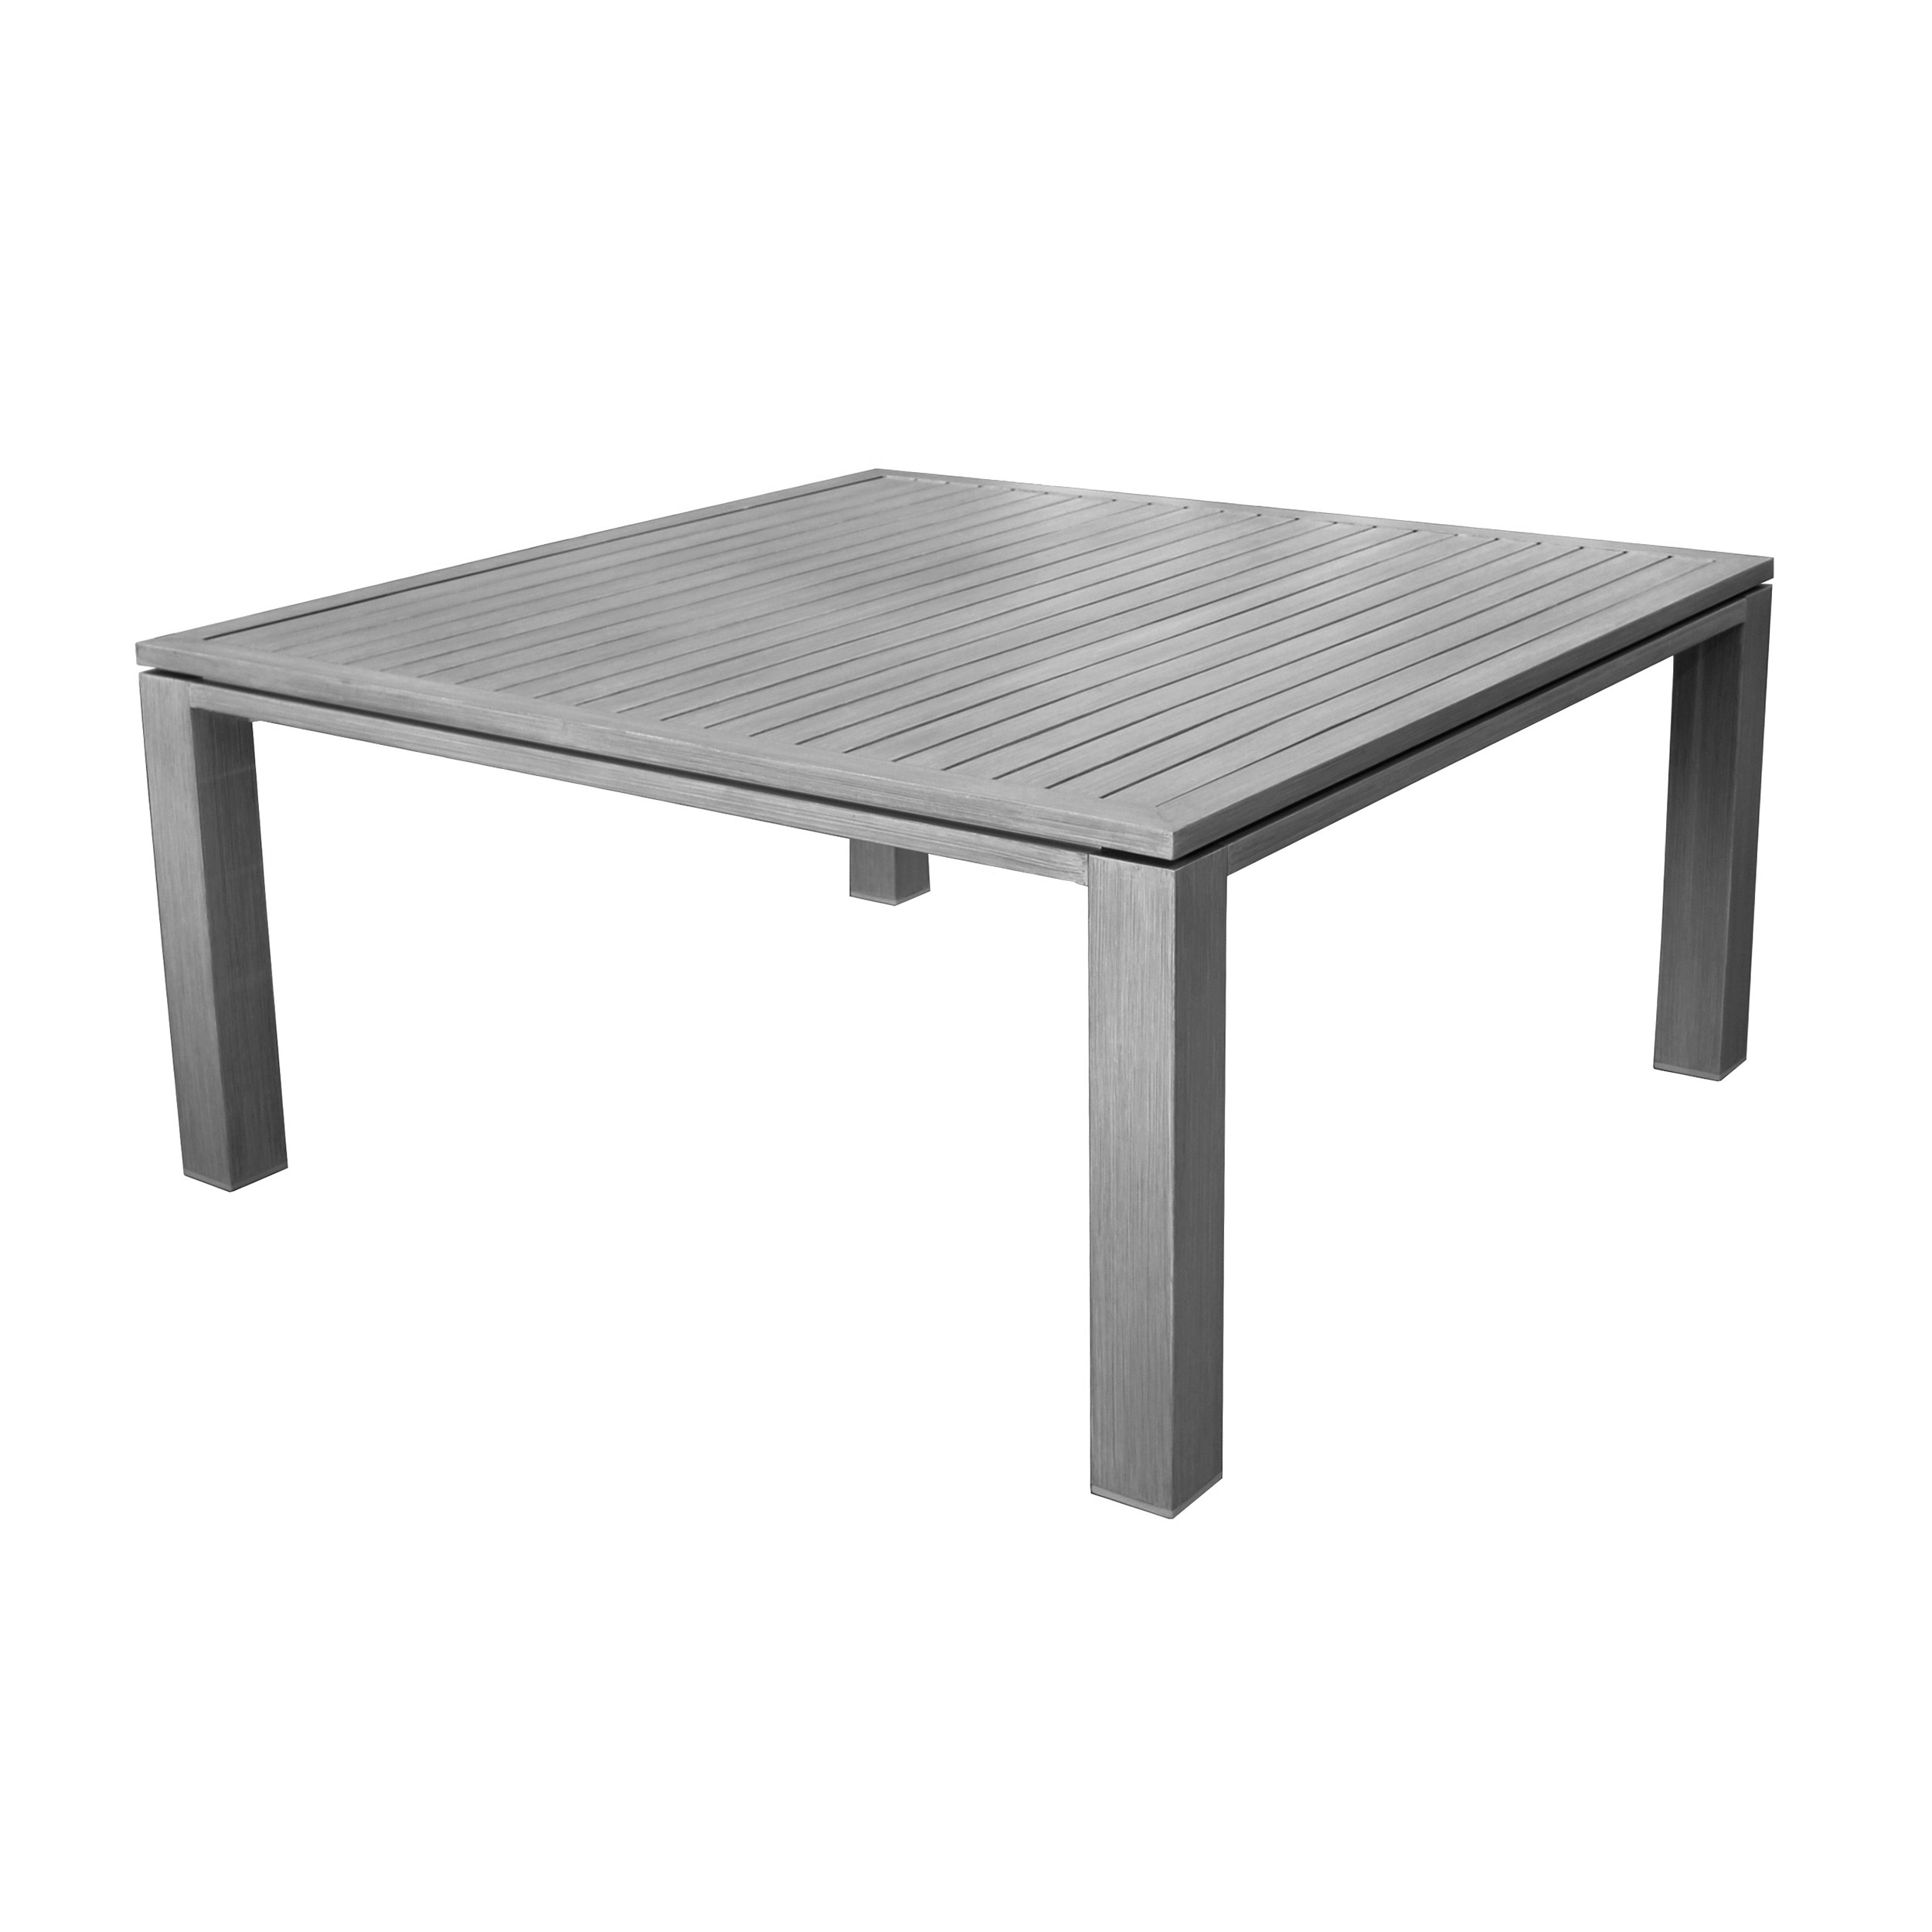 Table de jardin carr e 160 cm marbella grise commandez for Table de jardin prix